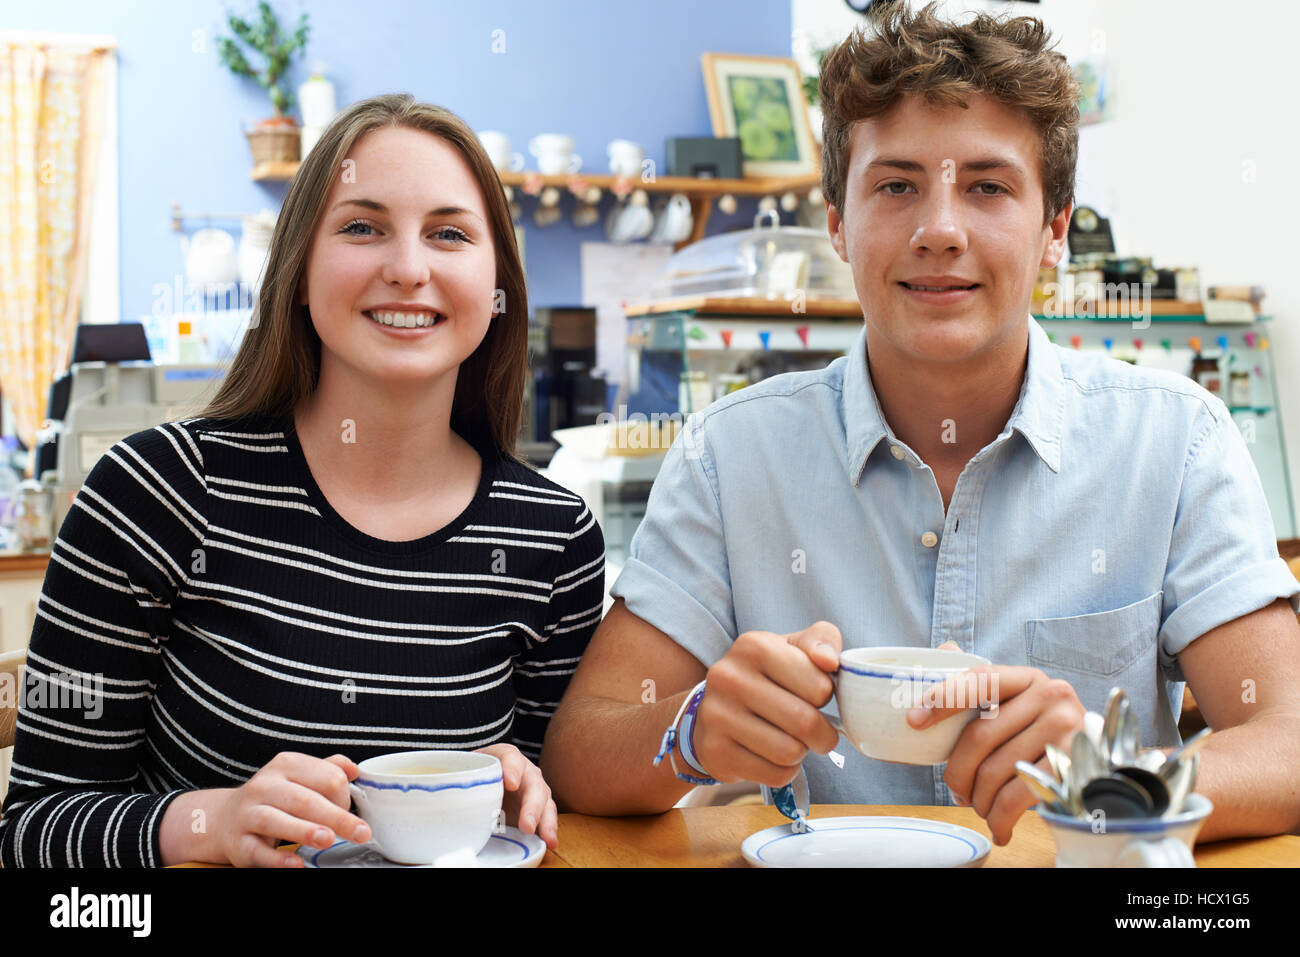 Groupe de Portrait of Teenage Couple Meeting In Cafe Photo Stock